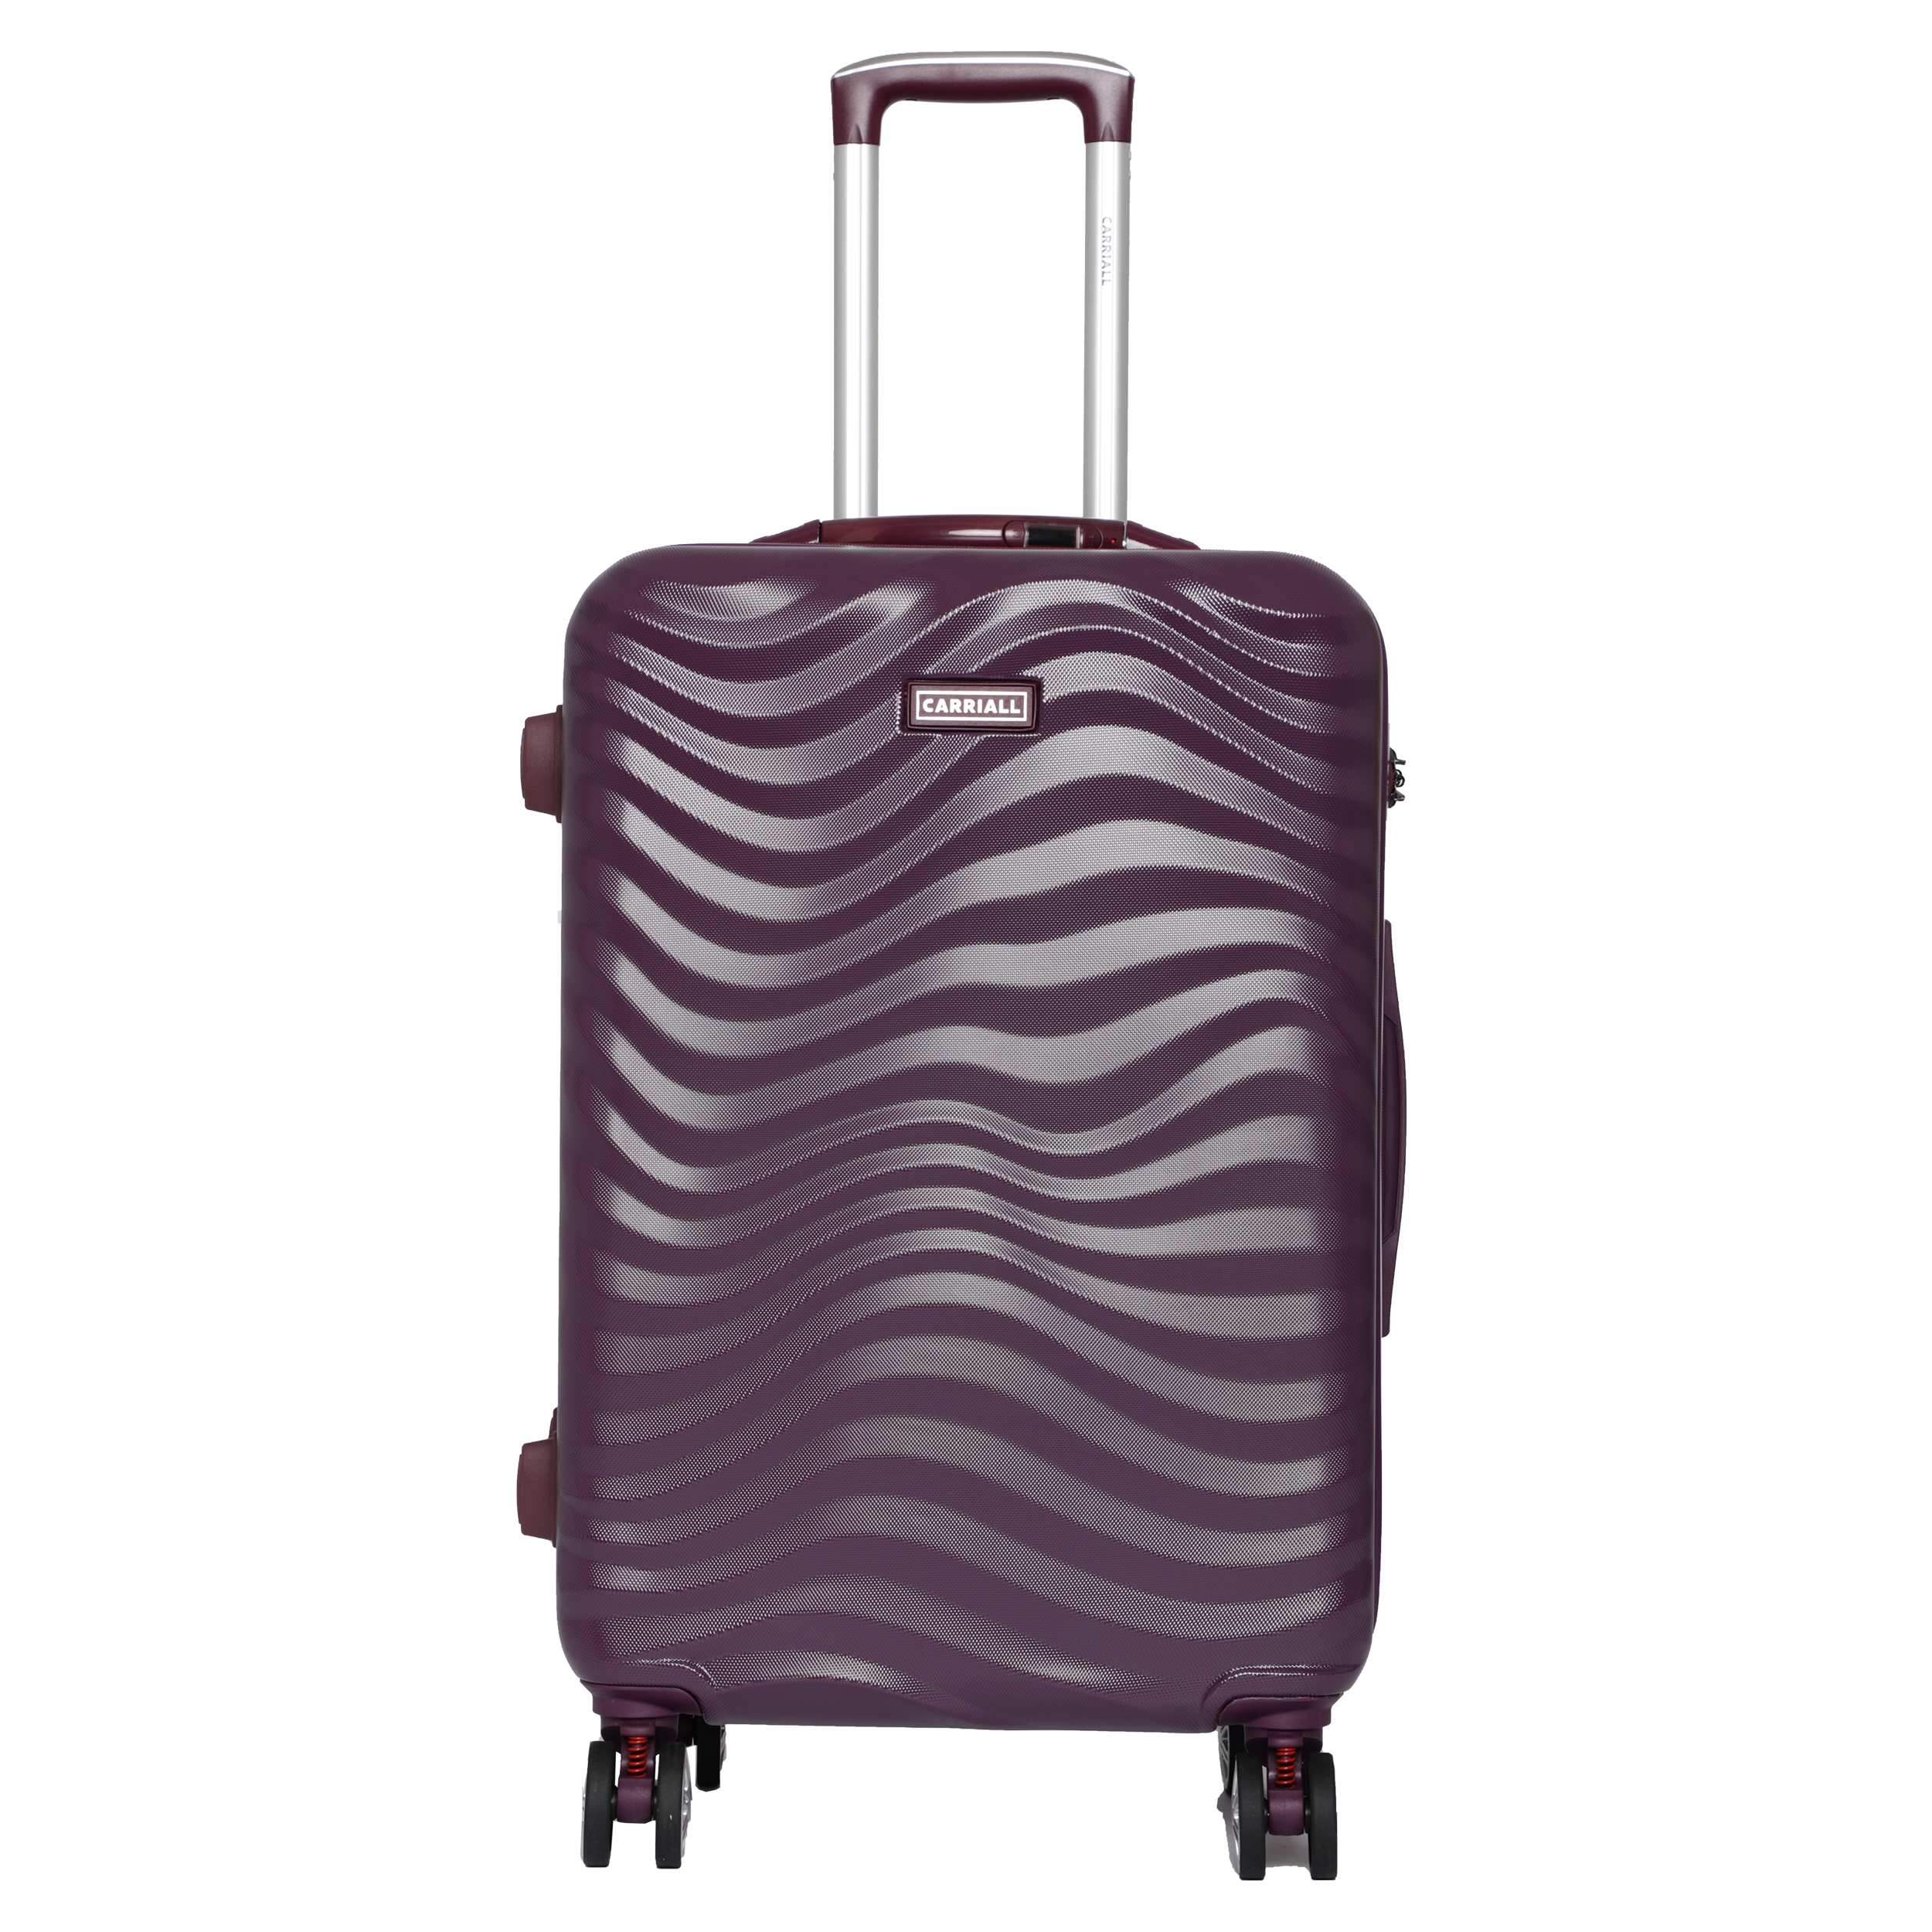 Carriall Ripple Polycarbonate Trolley Bag (Smart Anti-Theft, Built-In Weight Scale, CALM0004, Purple)_1